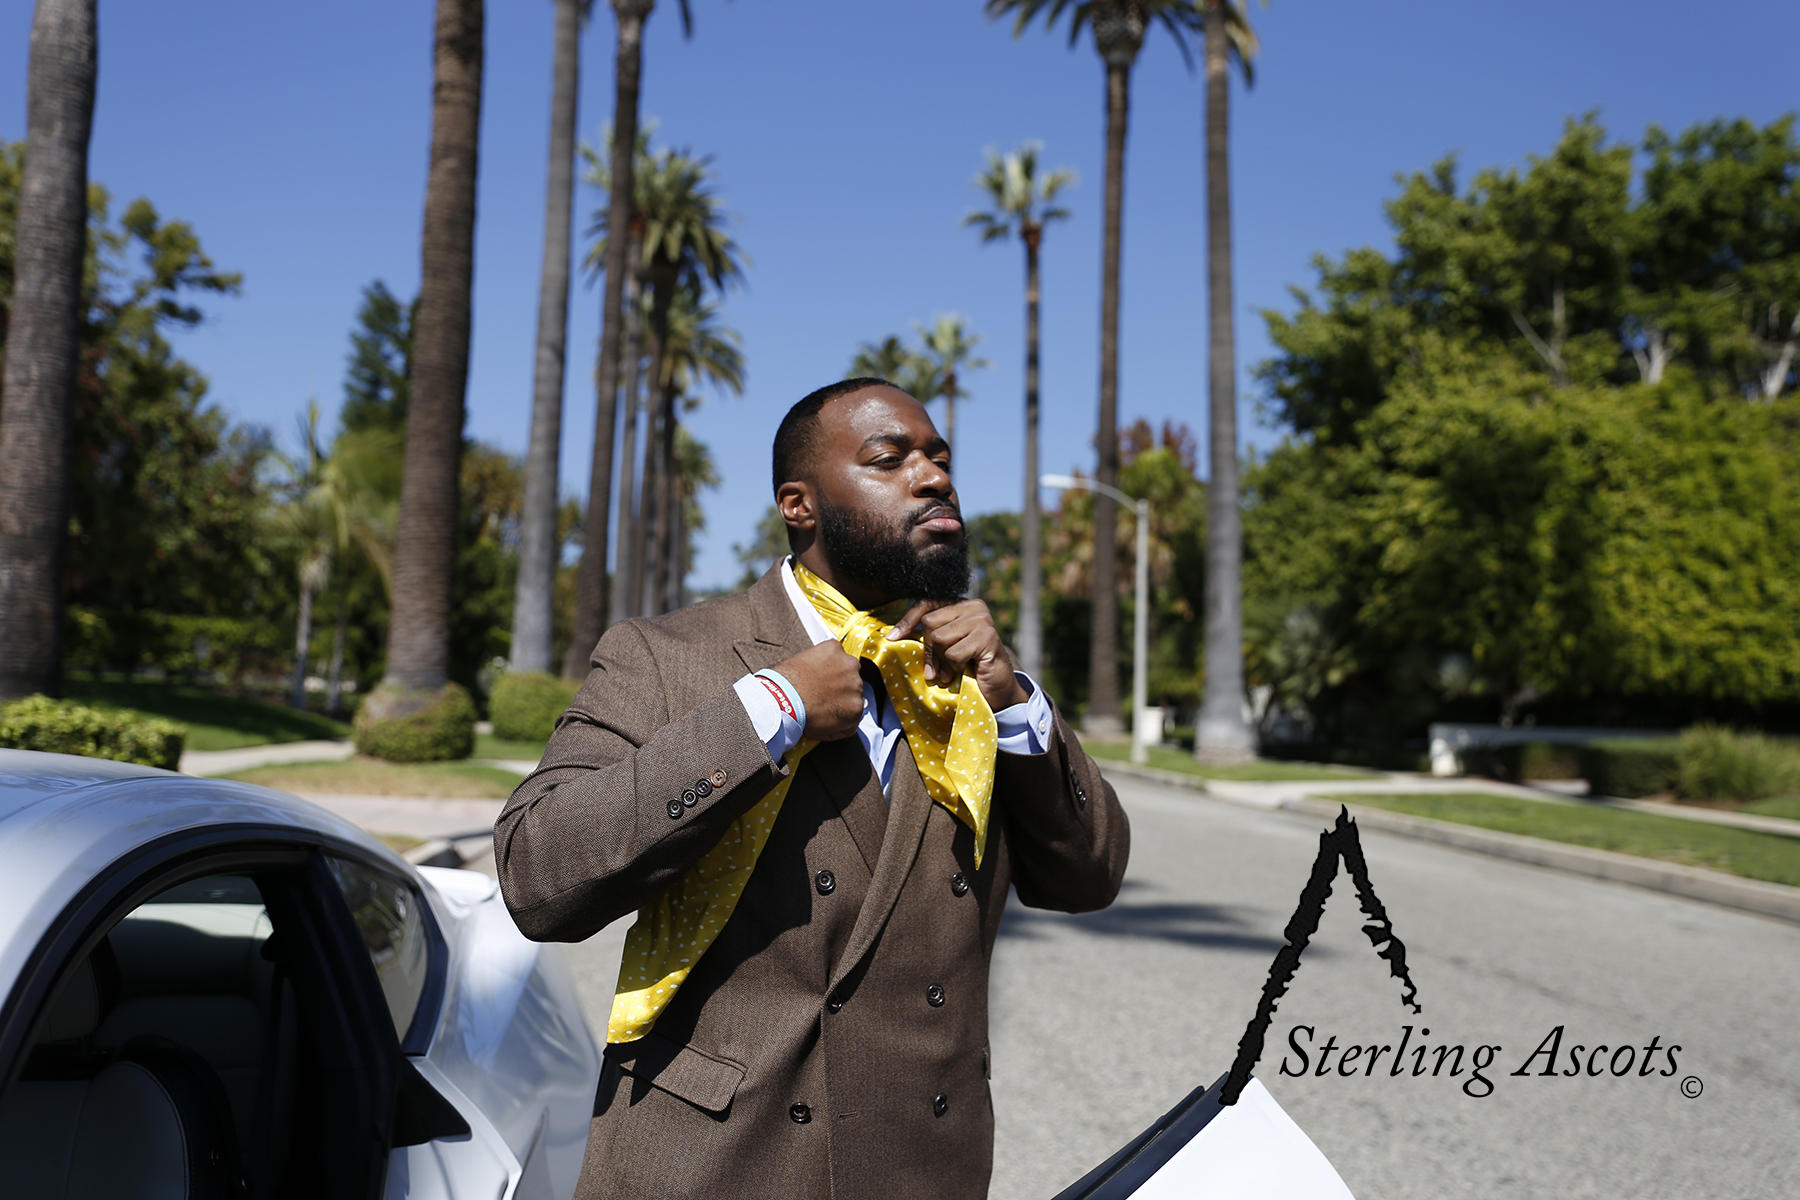 The Medallion Spec Sterling Ascot. This look is comprised of a silk yellow ascot, blue dress shirt, and a double breasted blazer. Shot in Beverly Hills, CA. Available only at SterlingAscots.com